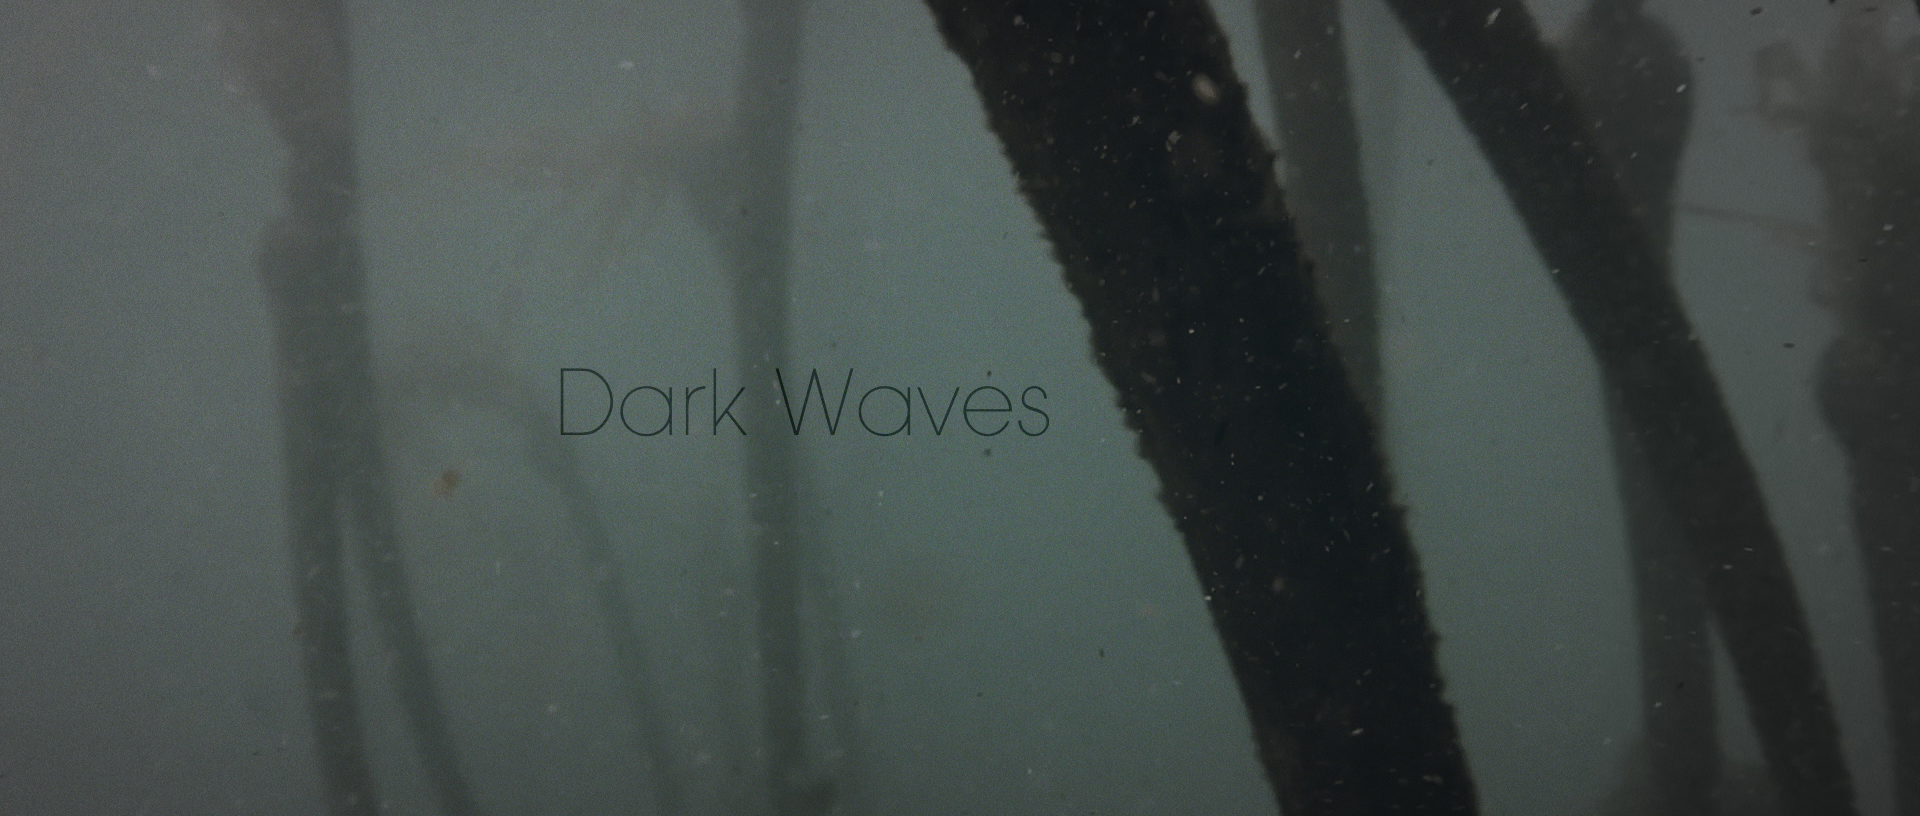 Dark Waves_2.1.1.jpg